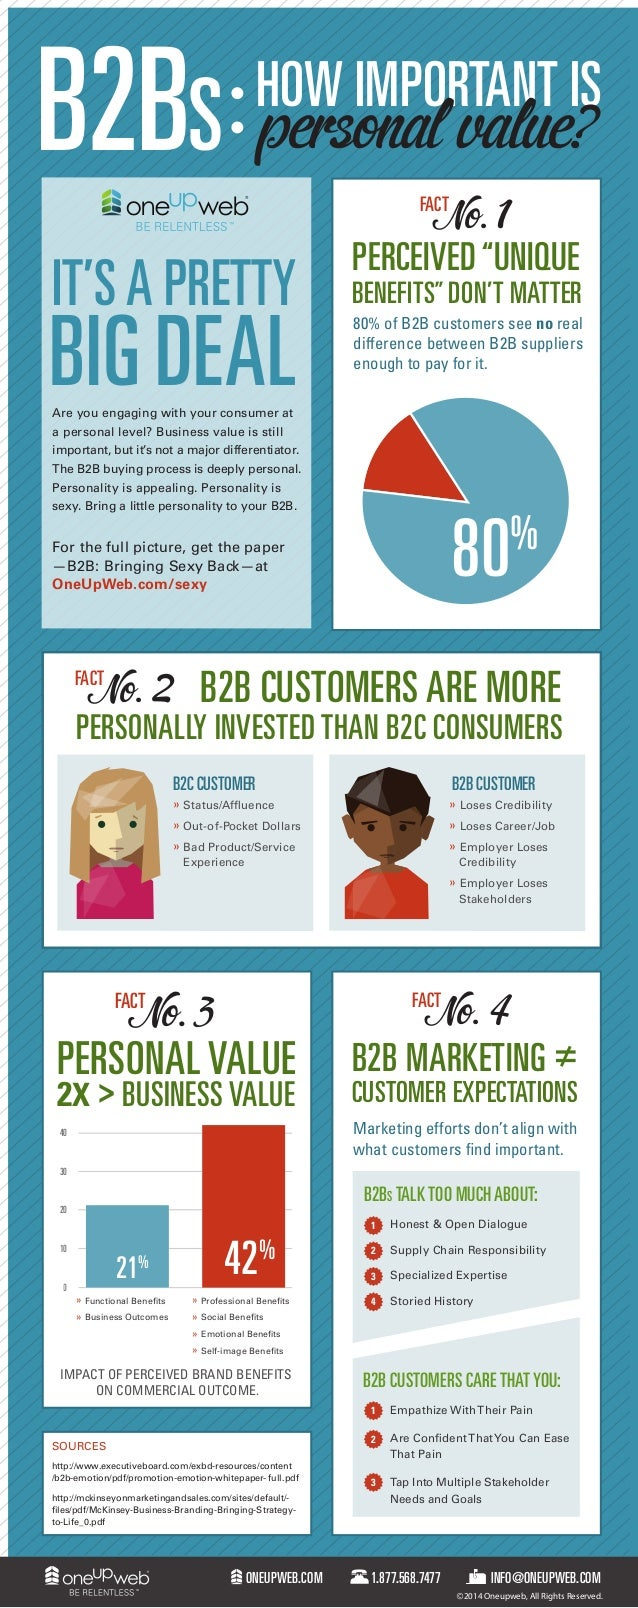 Know Their Personality: The Approach That Sets B2B Marketing Apart   Oneupweb